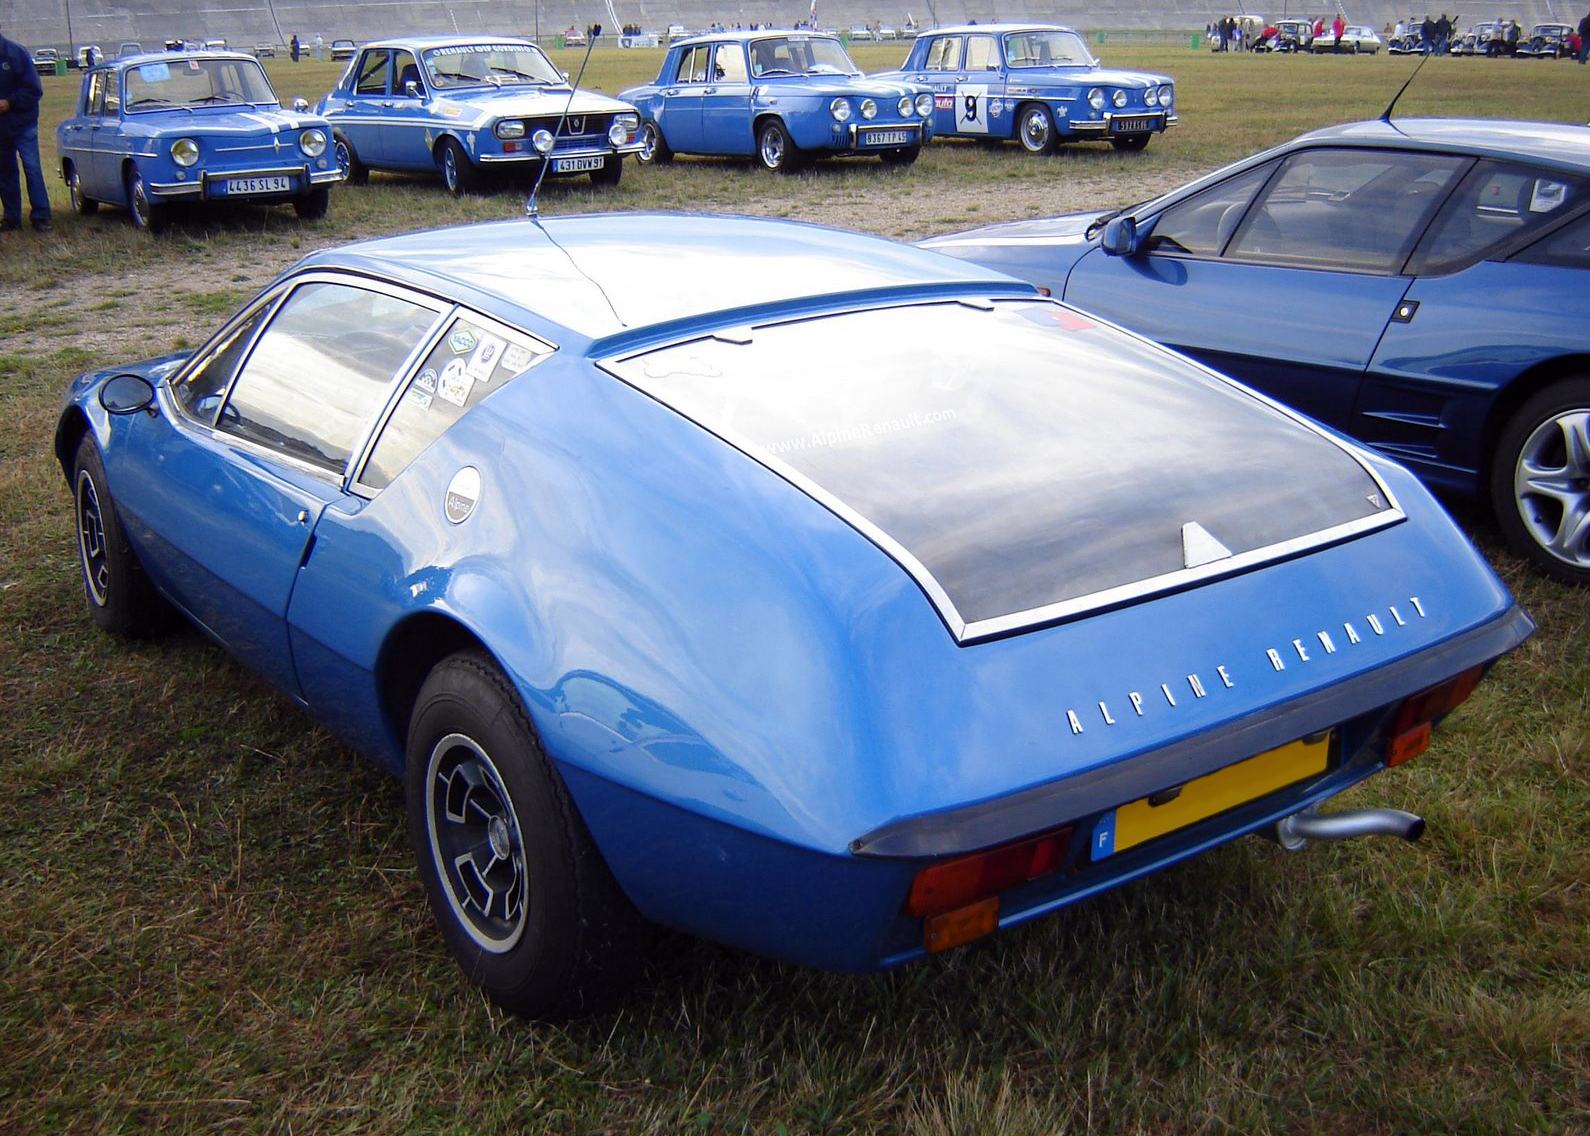 file renault alpine a310 four wikimedia commons. Black Bedroom Furniture Sets. Home Design Ideas